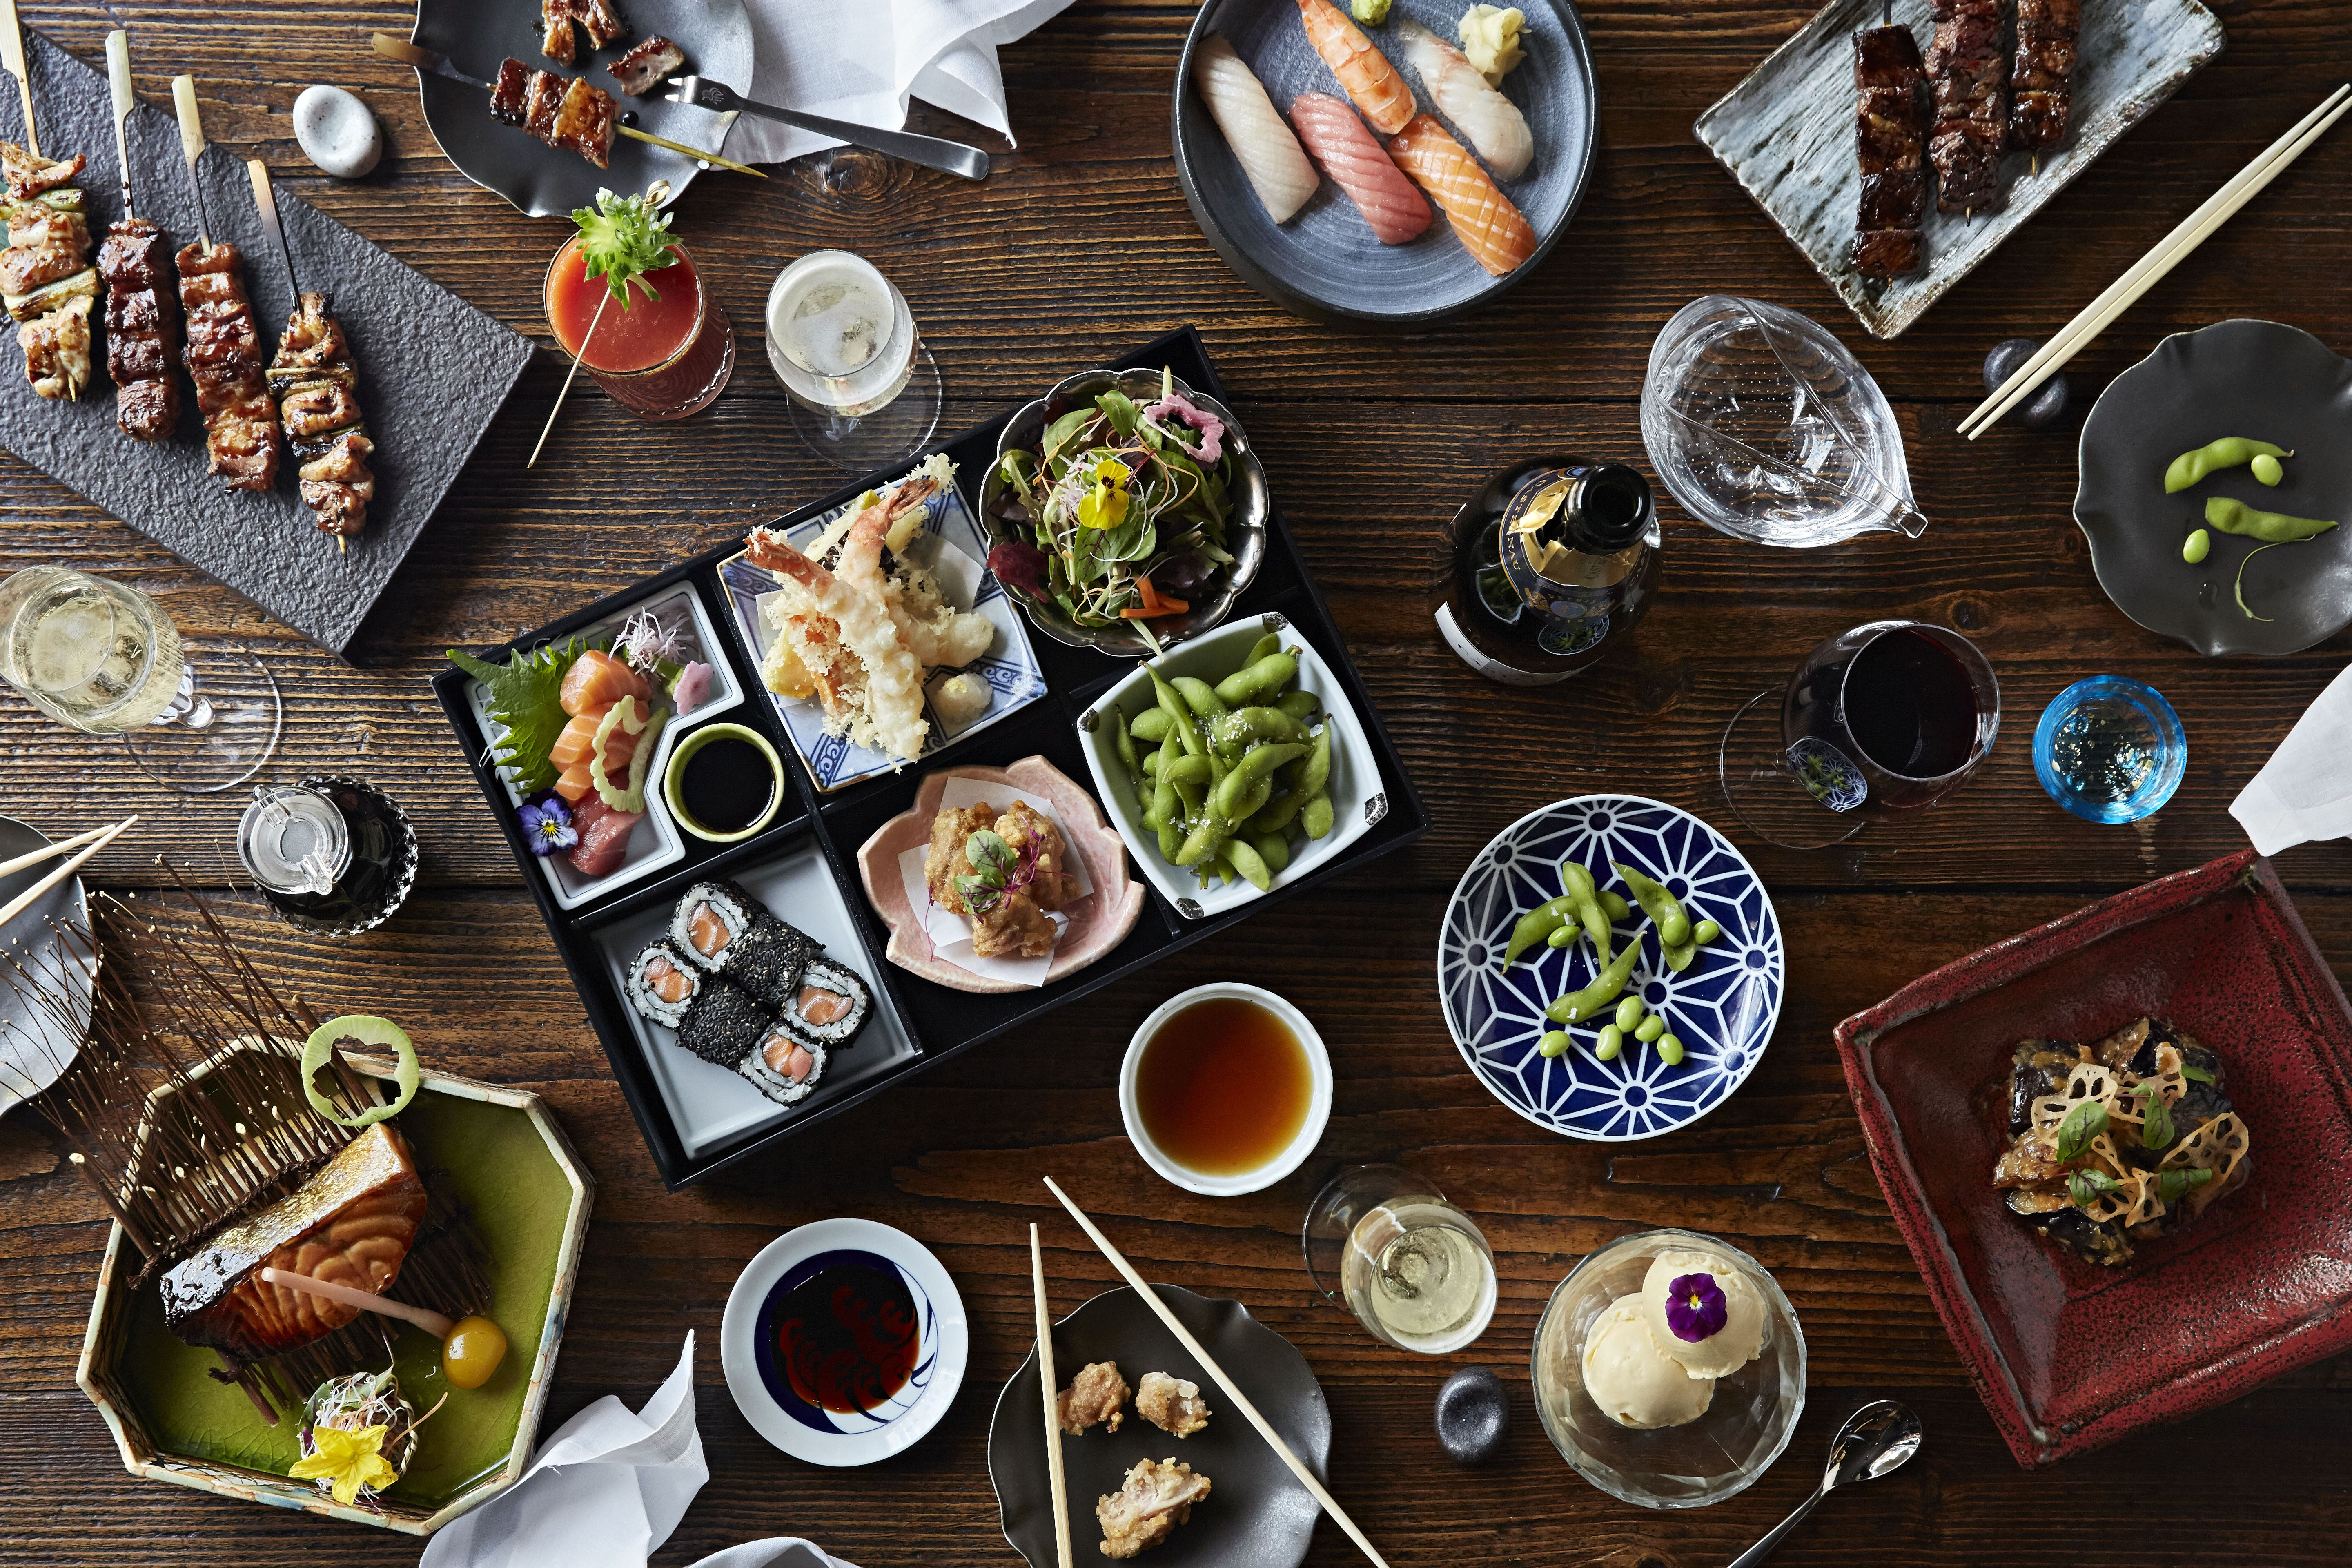 Disocver Sakagura S New Bottomless Brunch Menu Guaranteed To Excite The Senses With A Harmonious Balance Of Taste And Tex Brunch Menu Bottomless Brunch Brunch